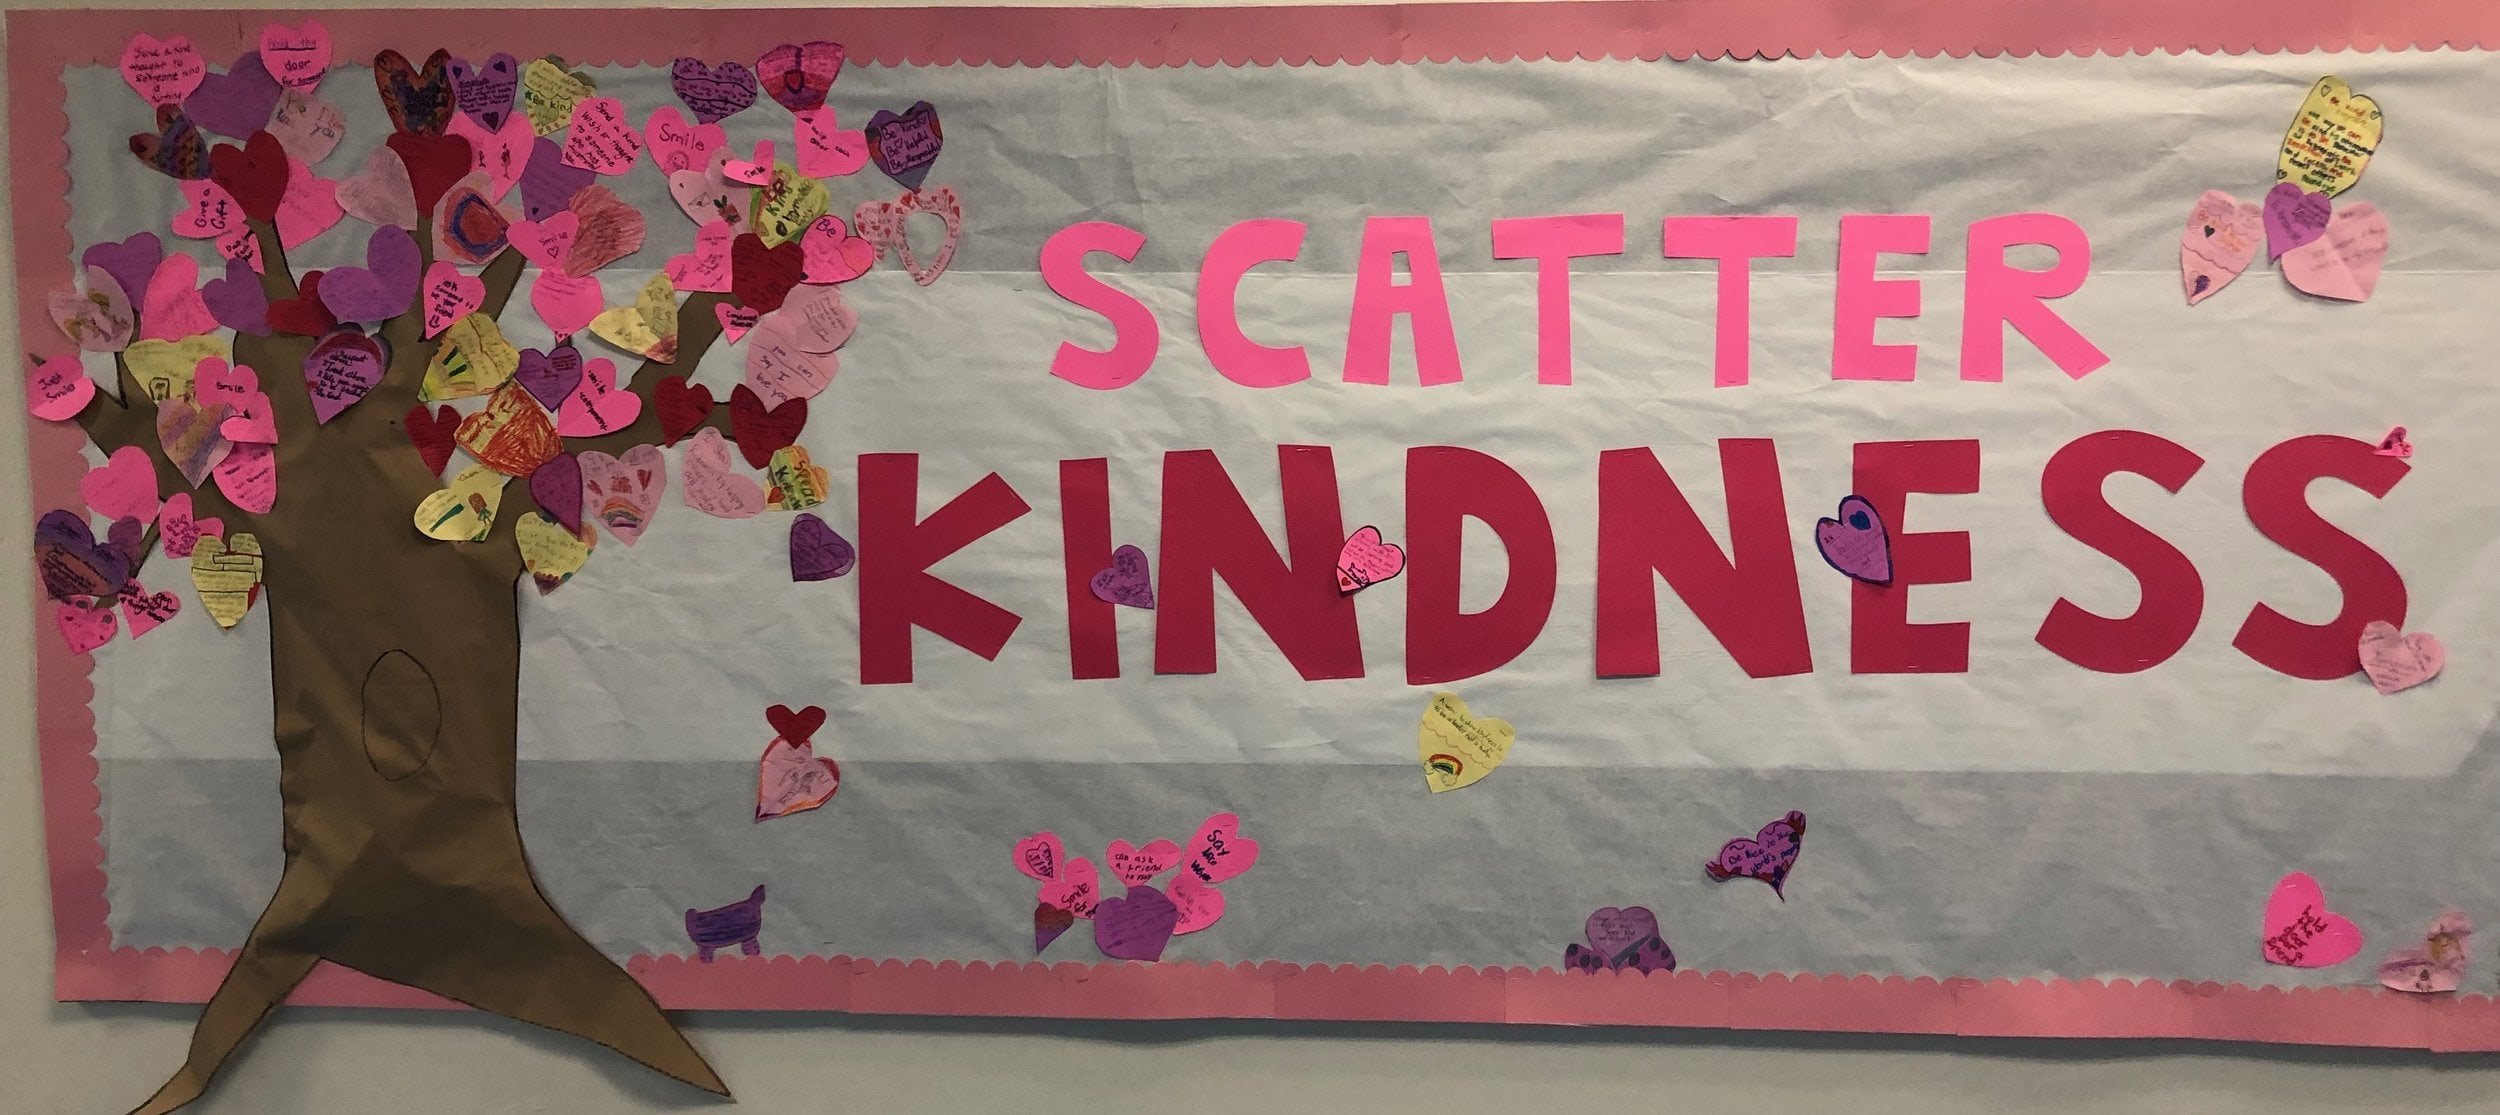 Scatter kindness to yourself, family/friends, and people who have been unkind to you!